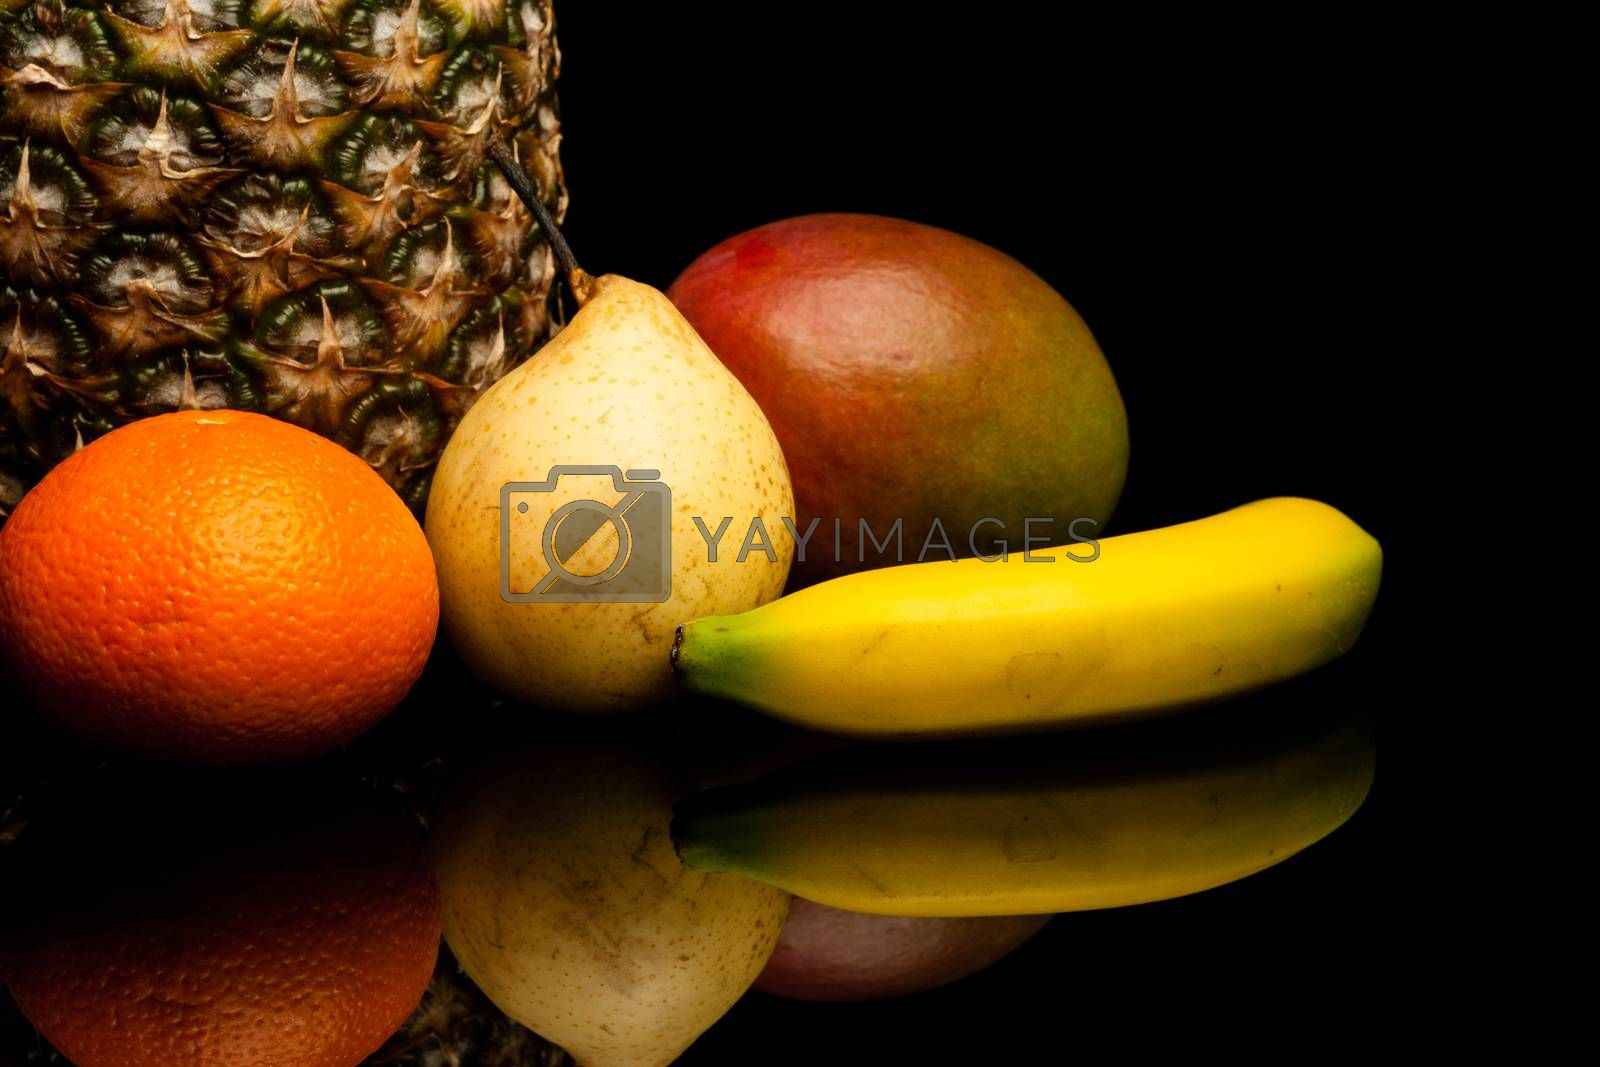 Royalty free image of fruits by furo_felix